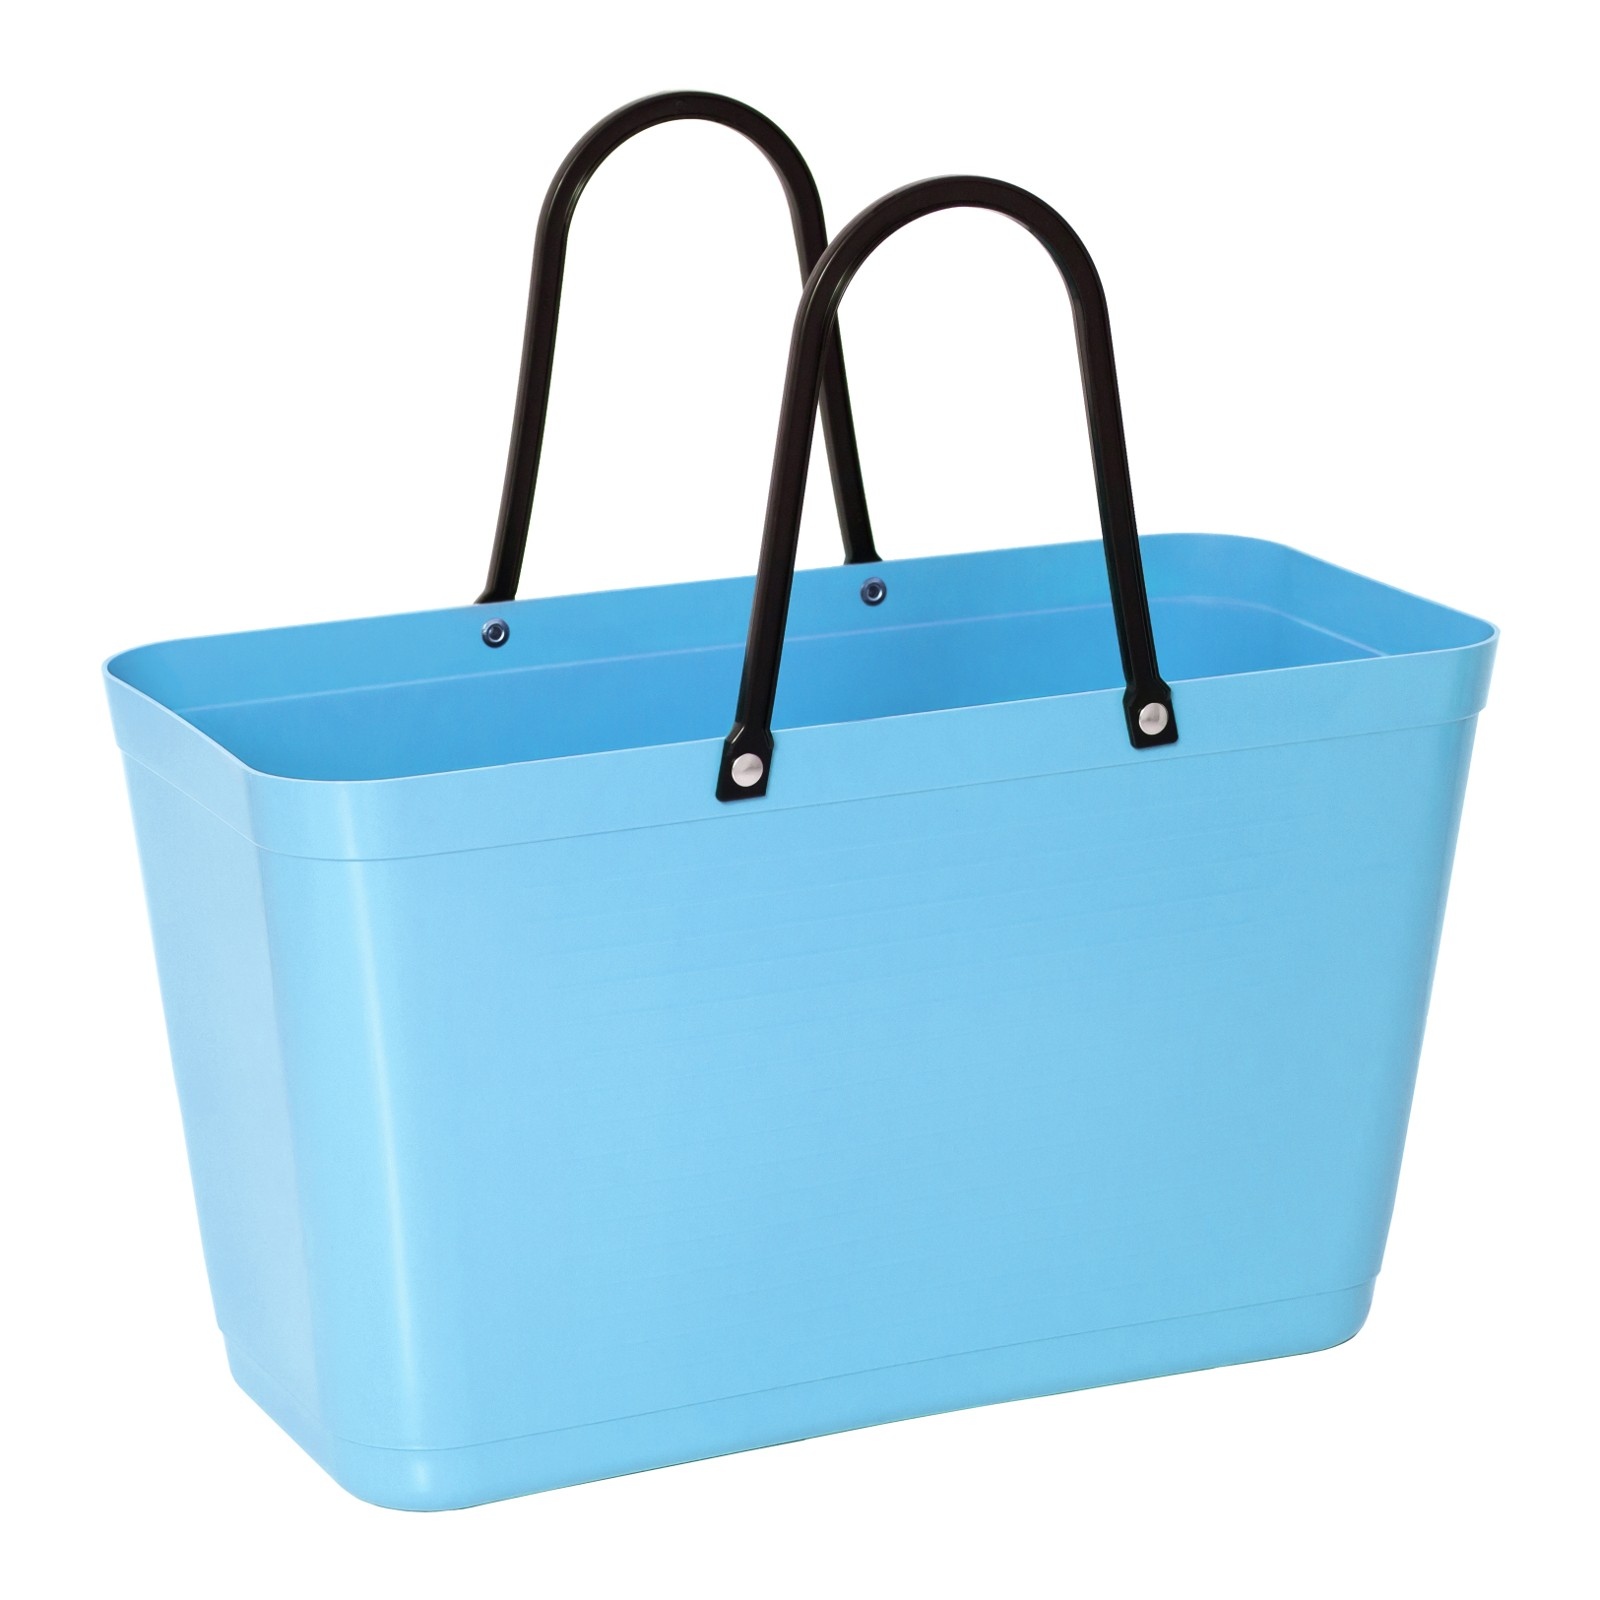 hinza 054-hinza-bag-large-light-blue-green-plastic